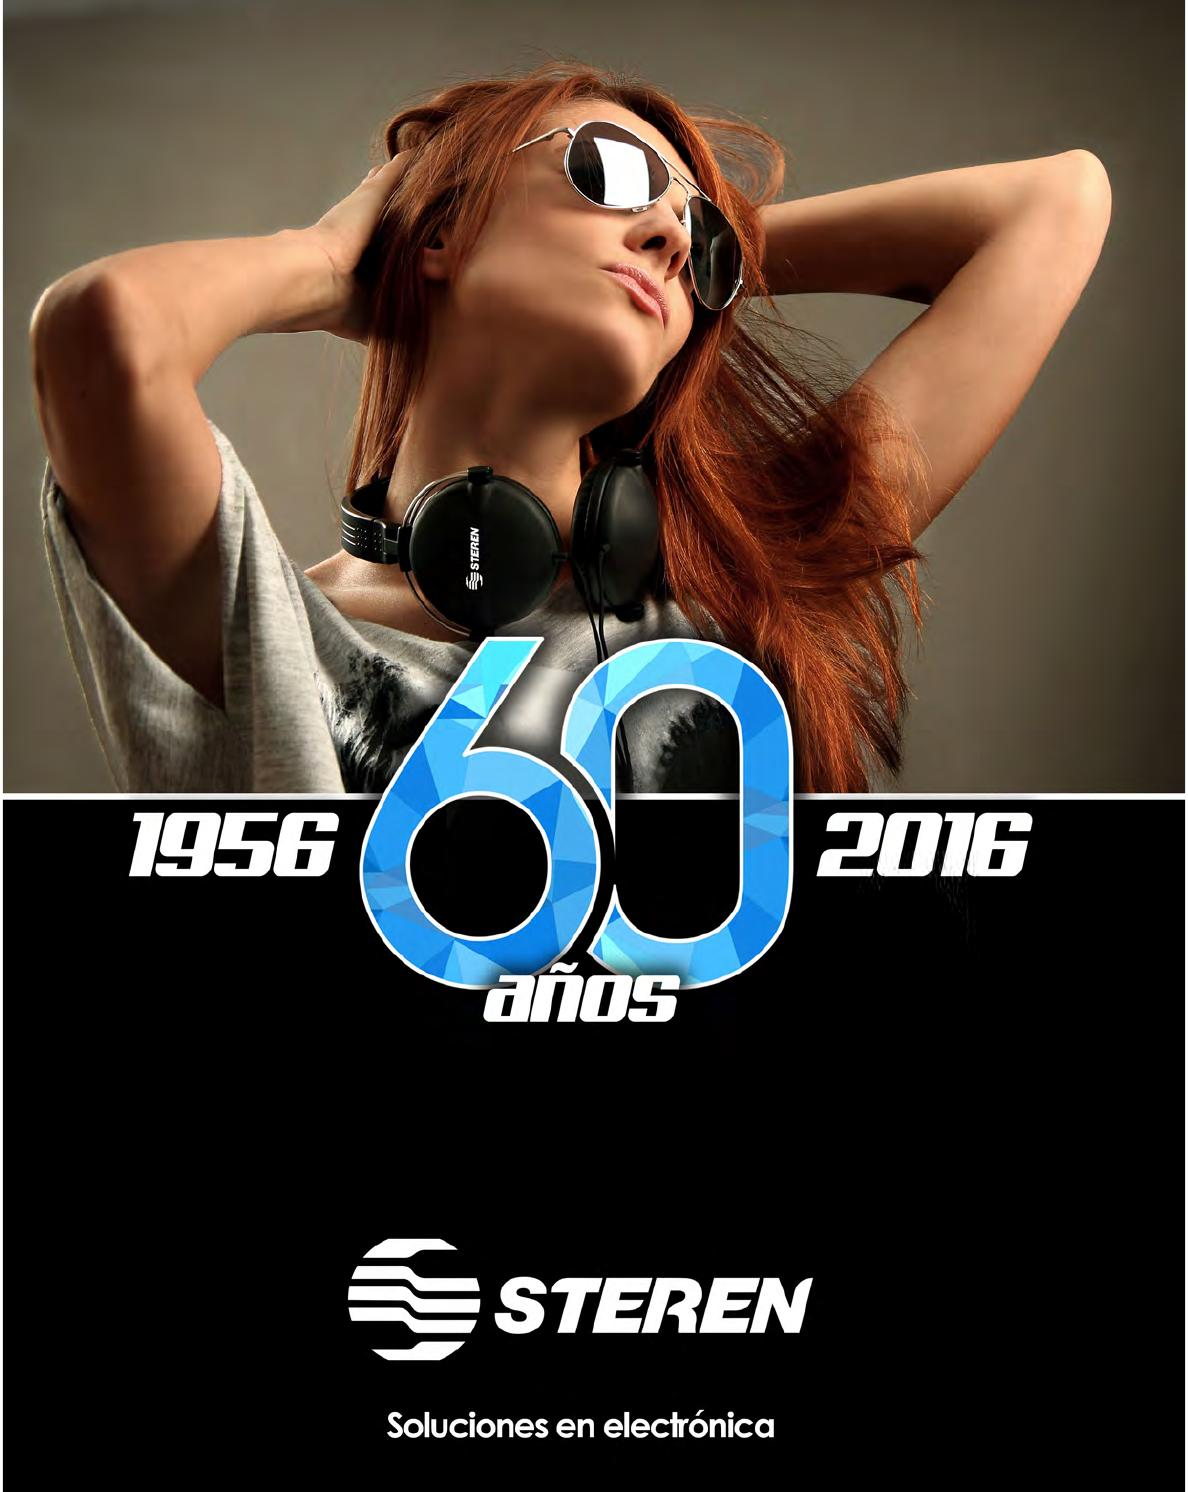 Catalogo Steren 2016 By Electronica Steren Issuu